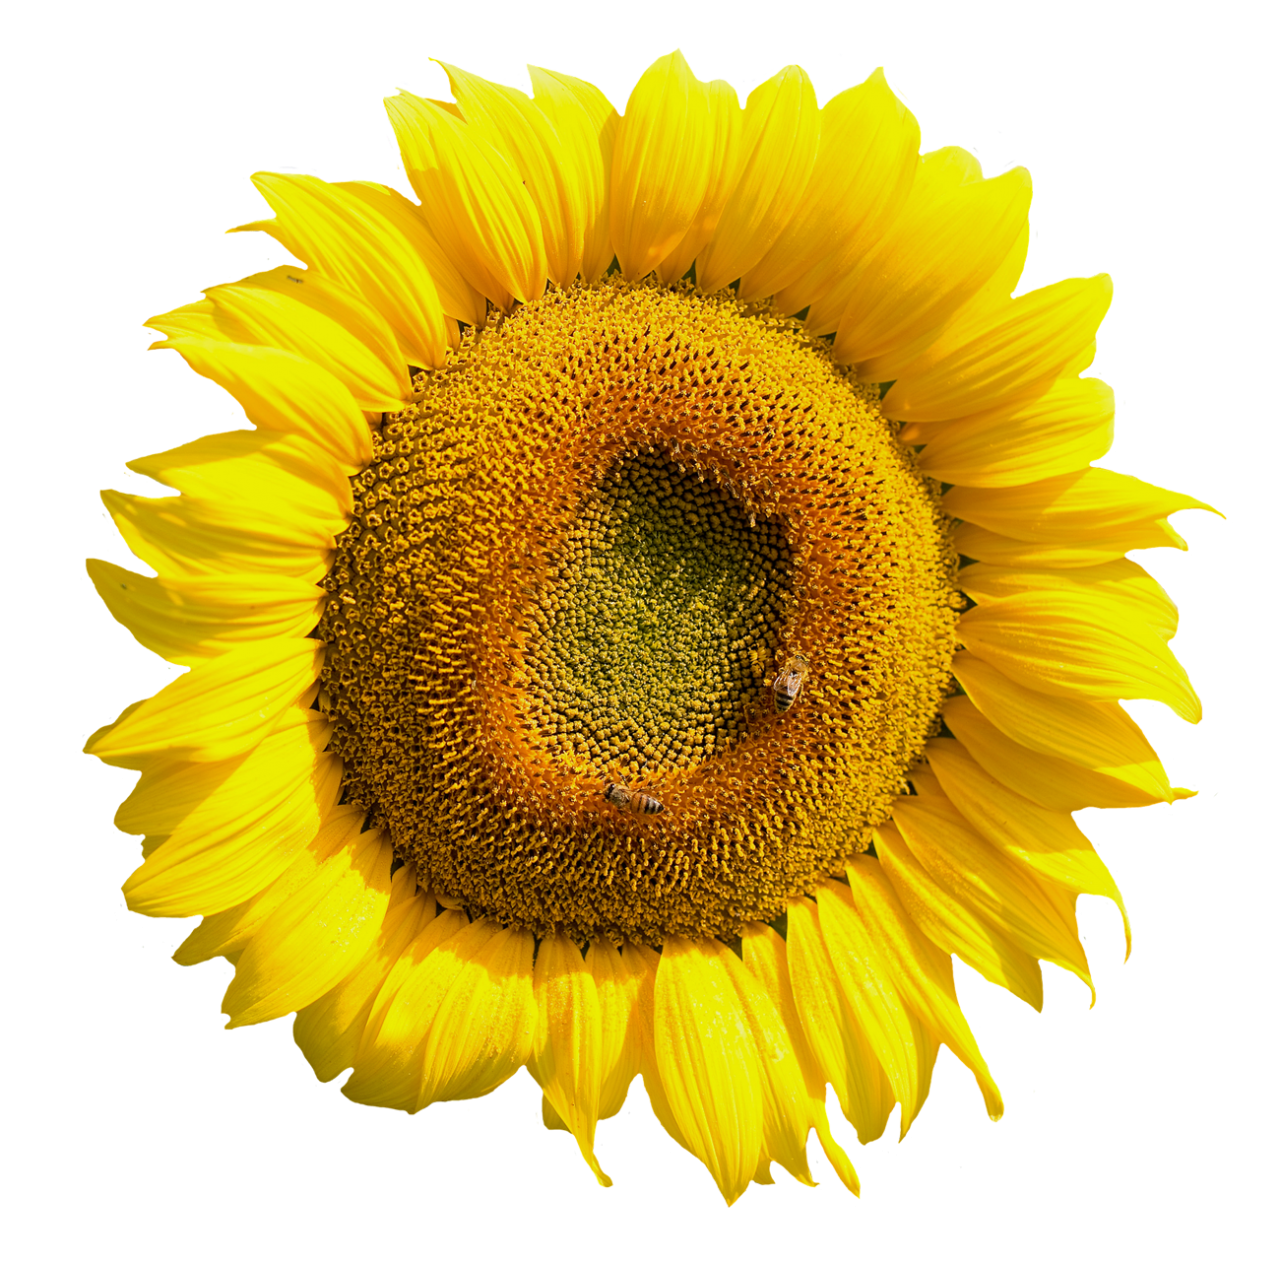 Yellow Sunflower Flower PNG Image